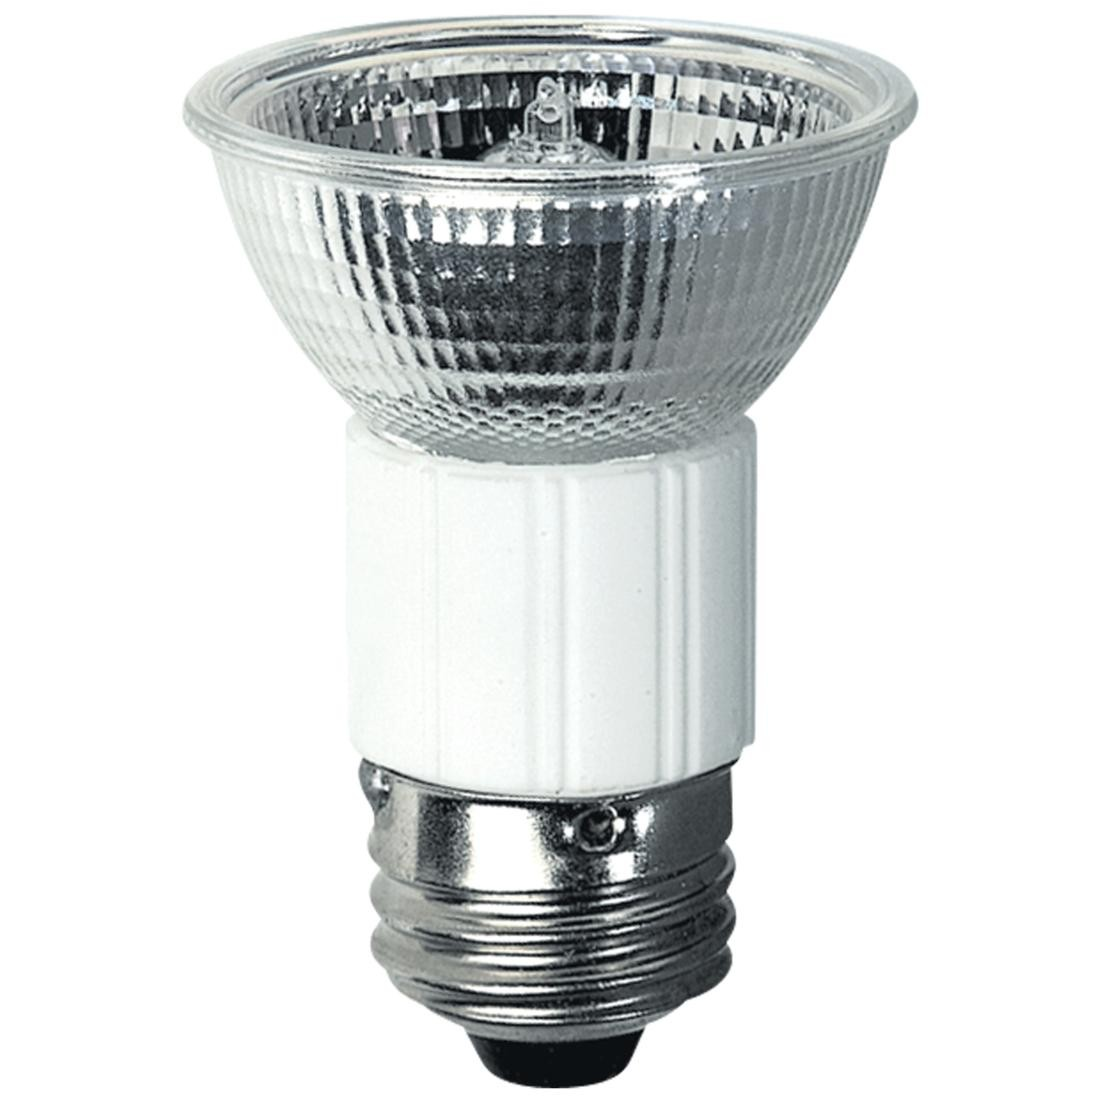 35w Mr16 E26 Base 120v: Standard JDR/E26/120V/100W 100 Watt MR16 Halogen 120V Medium